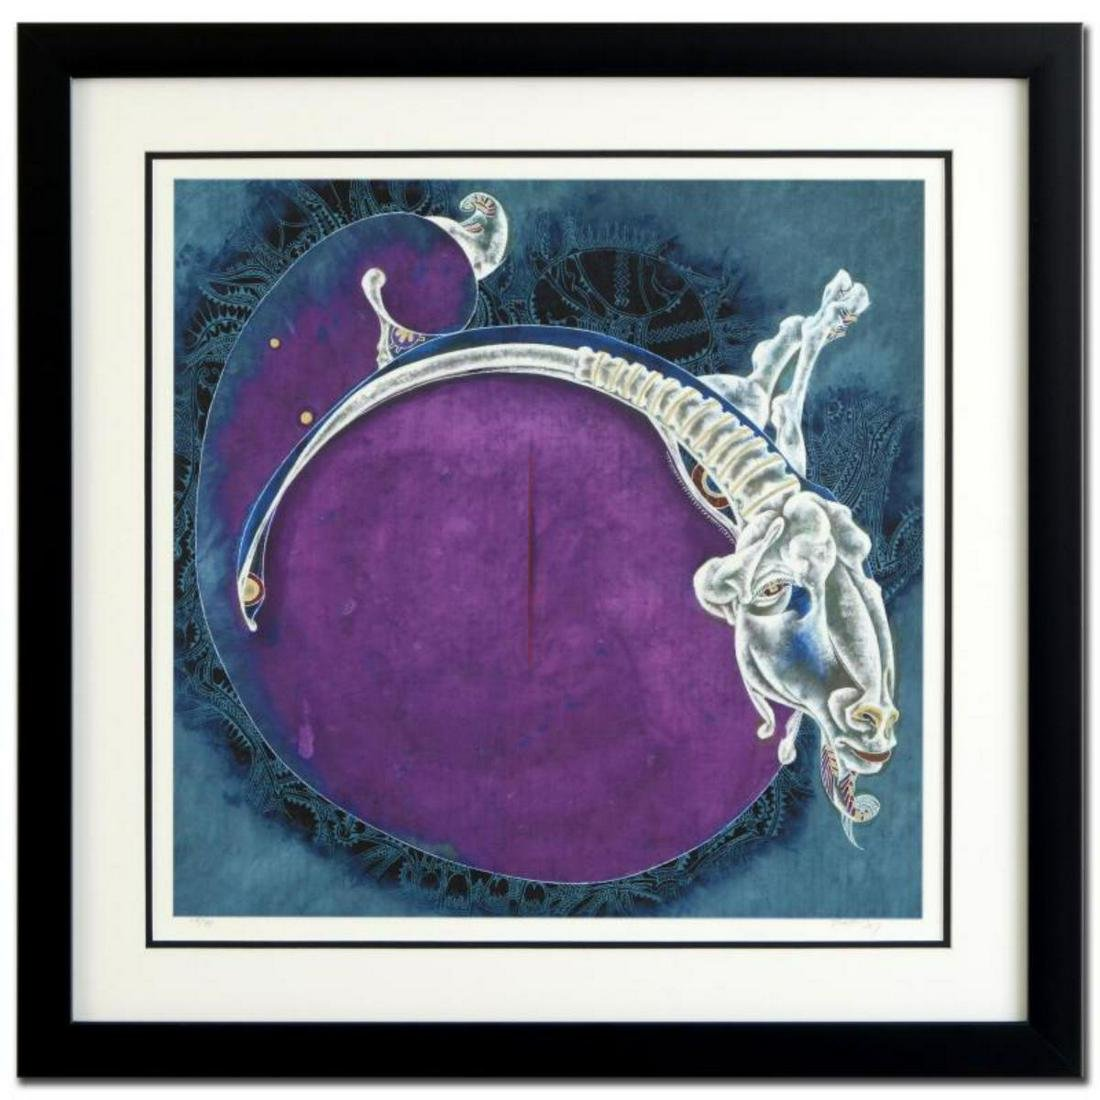 """Lu Hong, """"Aries"""" Framed Limited Edition Giclee,"""